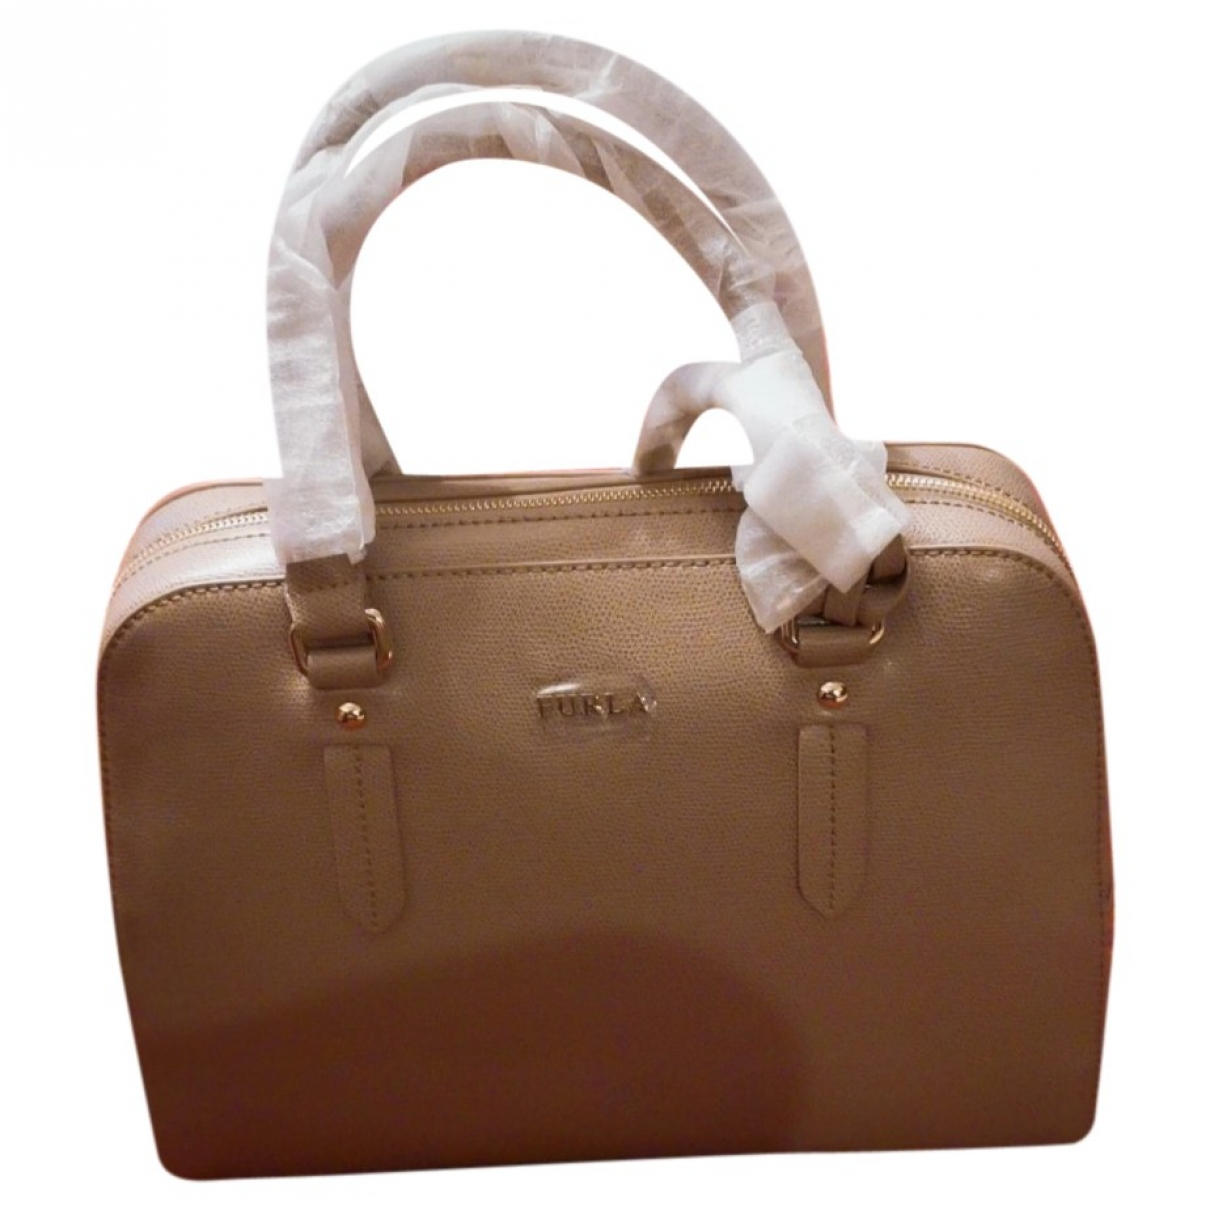 Furla \N Beige handbag for Women \N